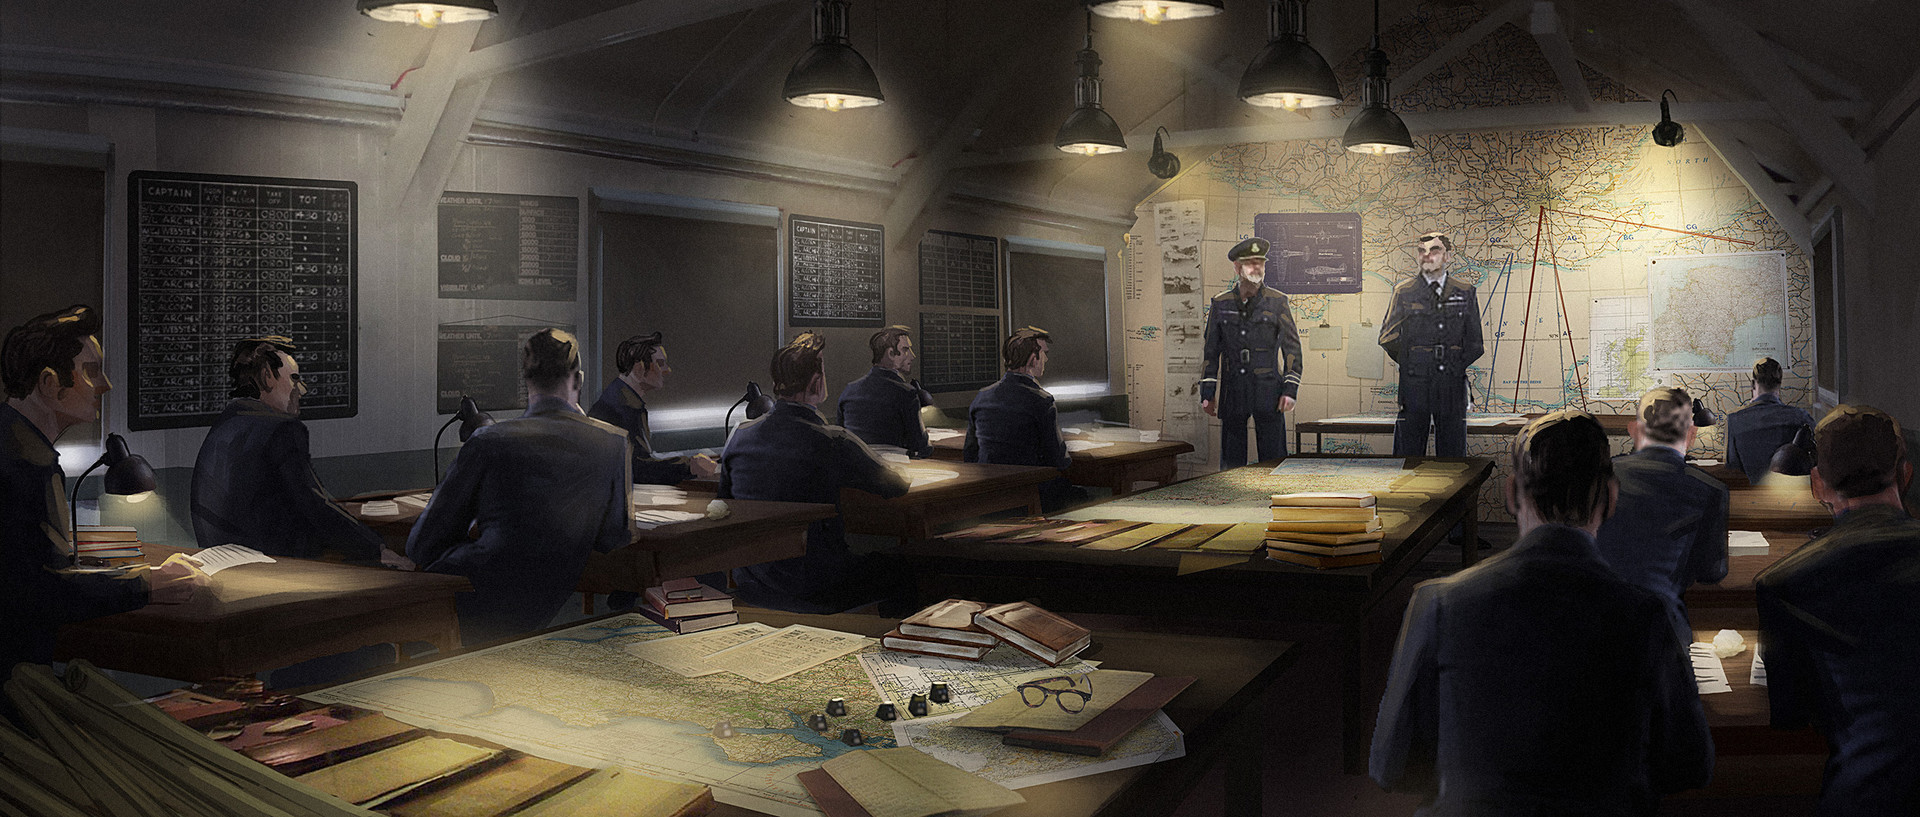 Nothof ferenc visual 10 raf northolt briefing room v4